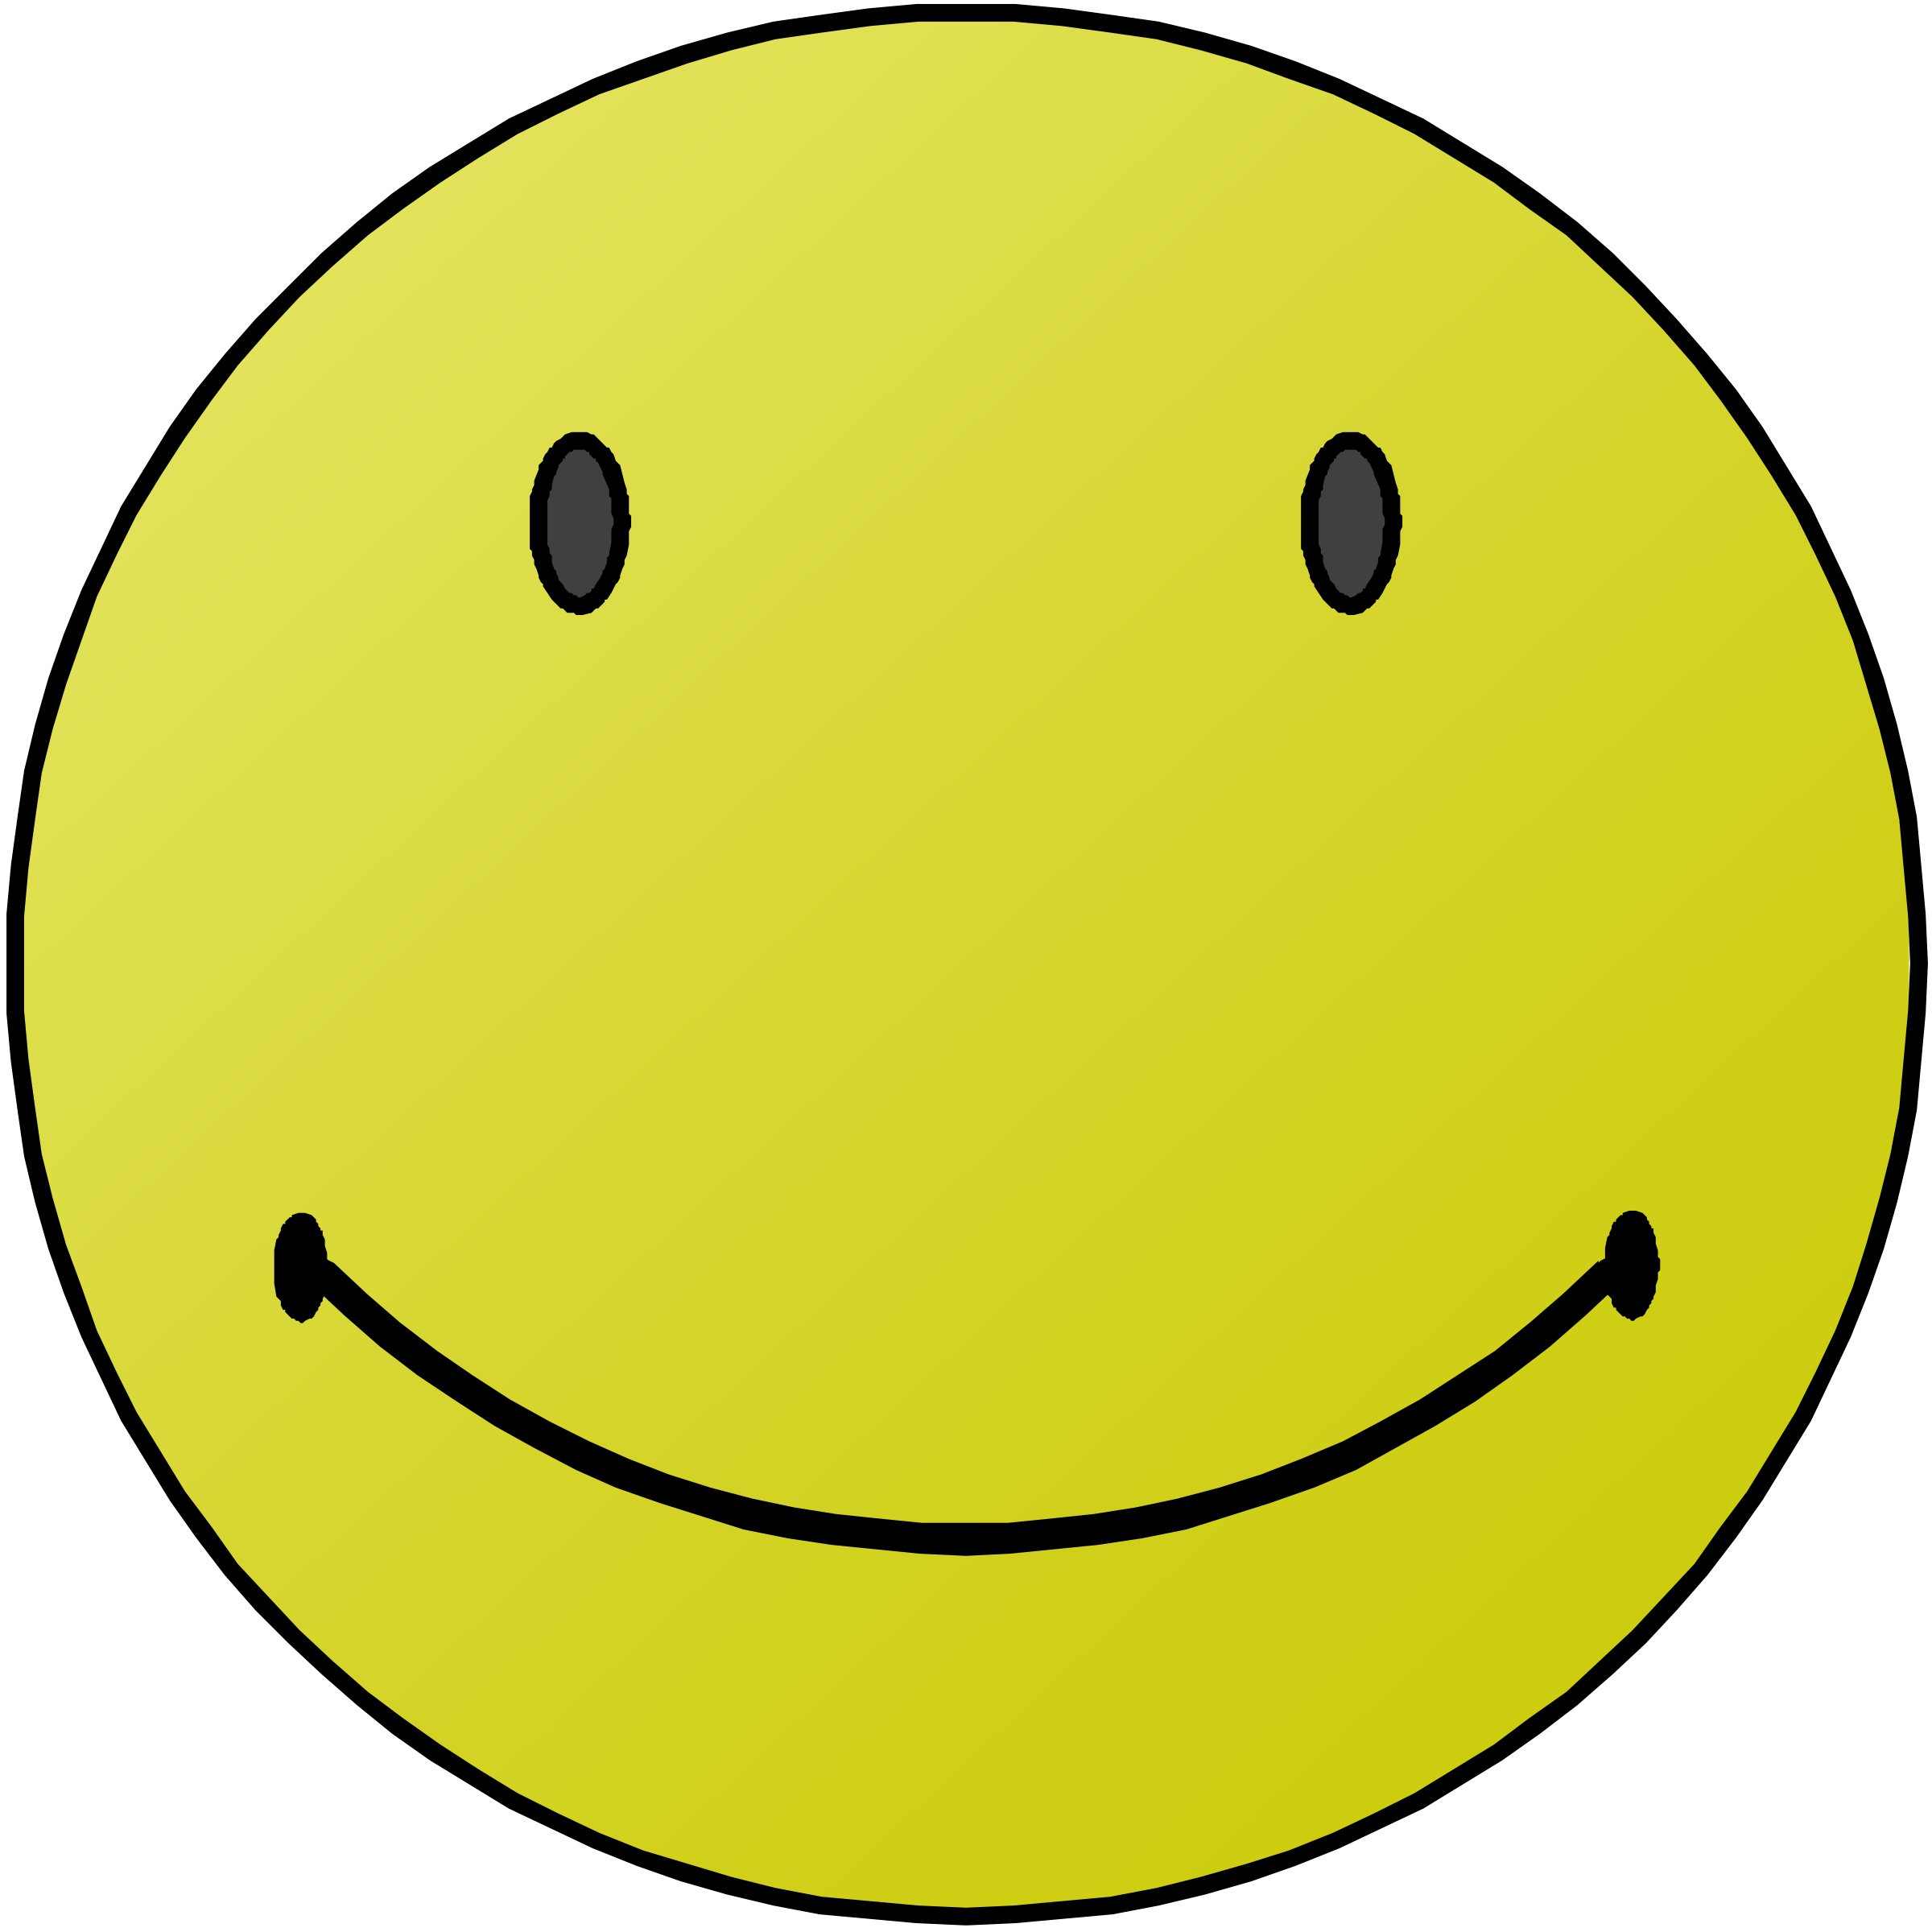 Free Sunny Face Cliparts, Download Free Clip Art, Free Clip.